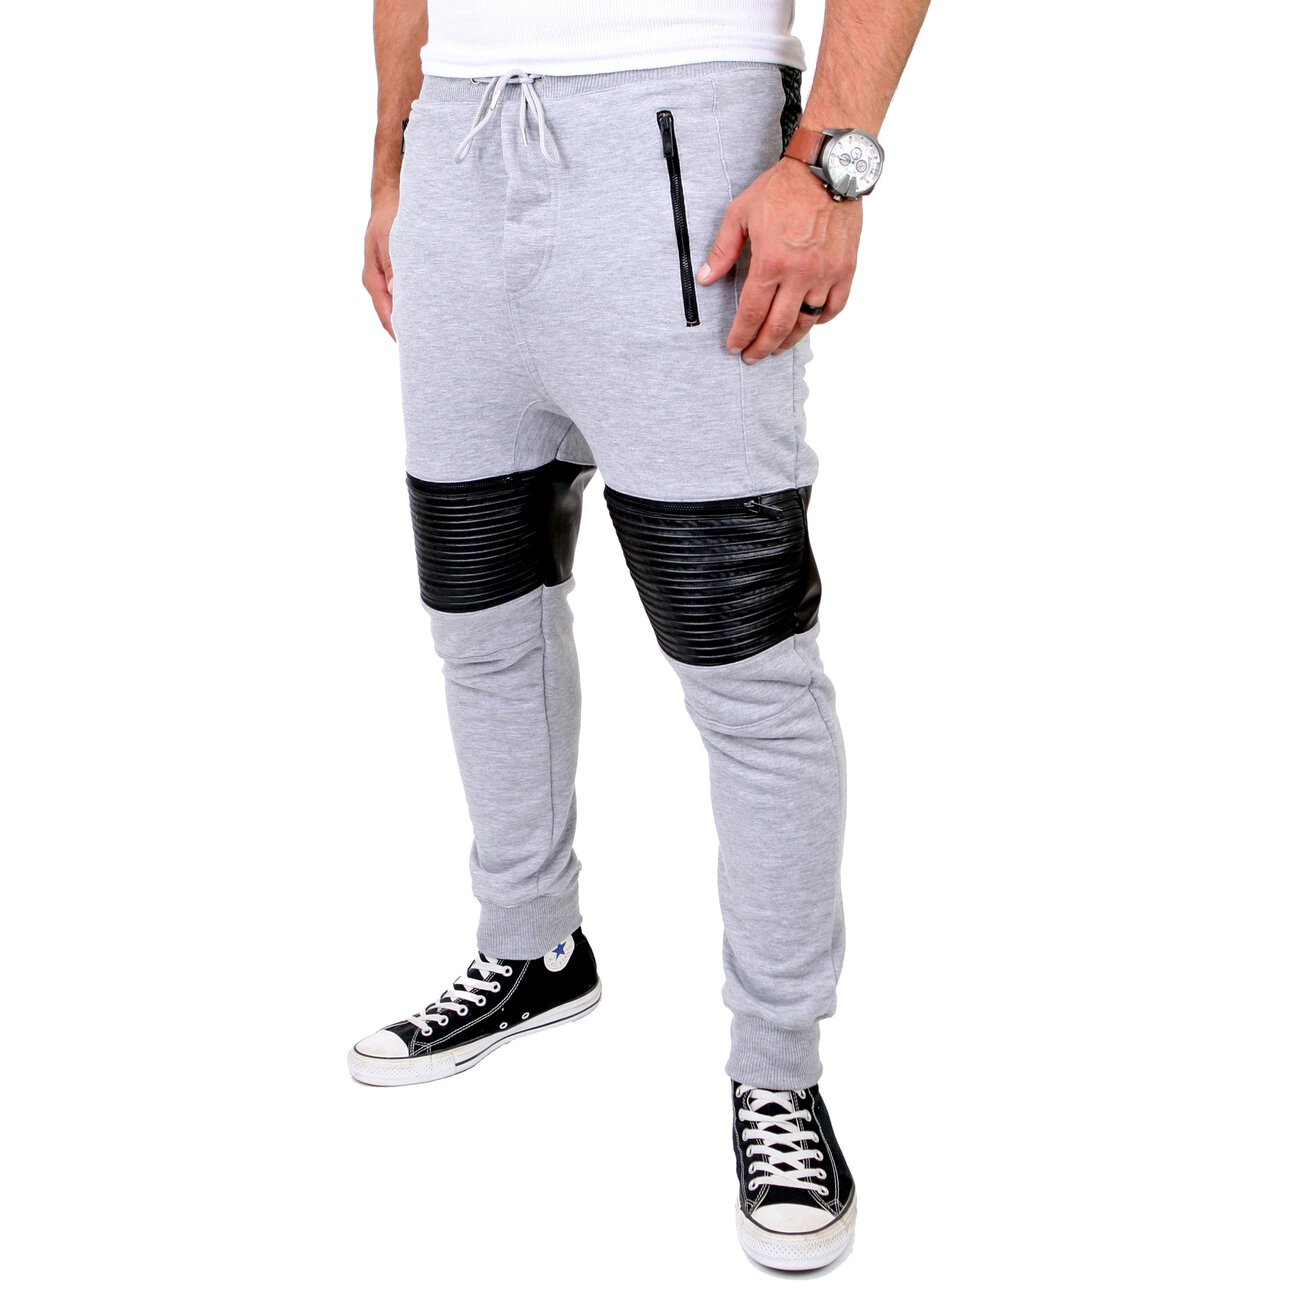 vsct jogginghose low crotch biker sporthose clubshorts. Black Bedroom Furniture Sets. Home Design Ideas